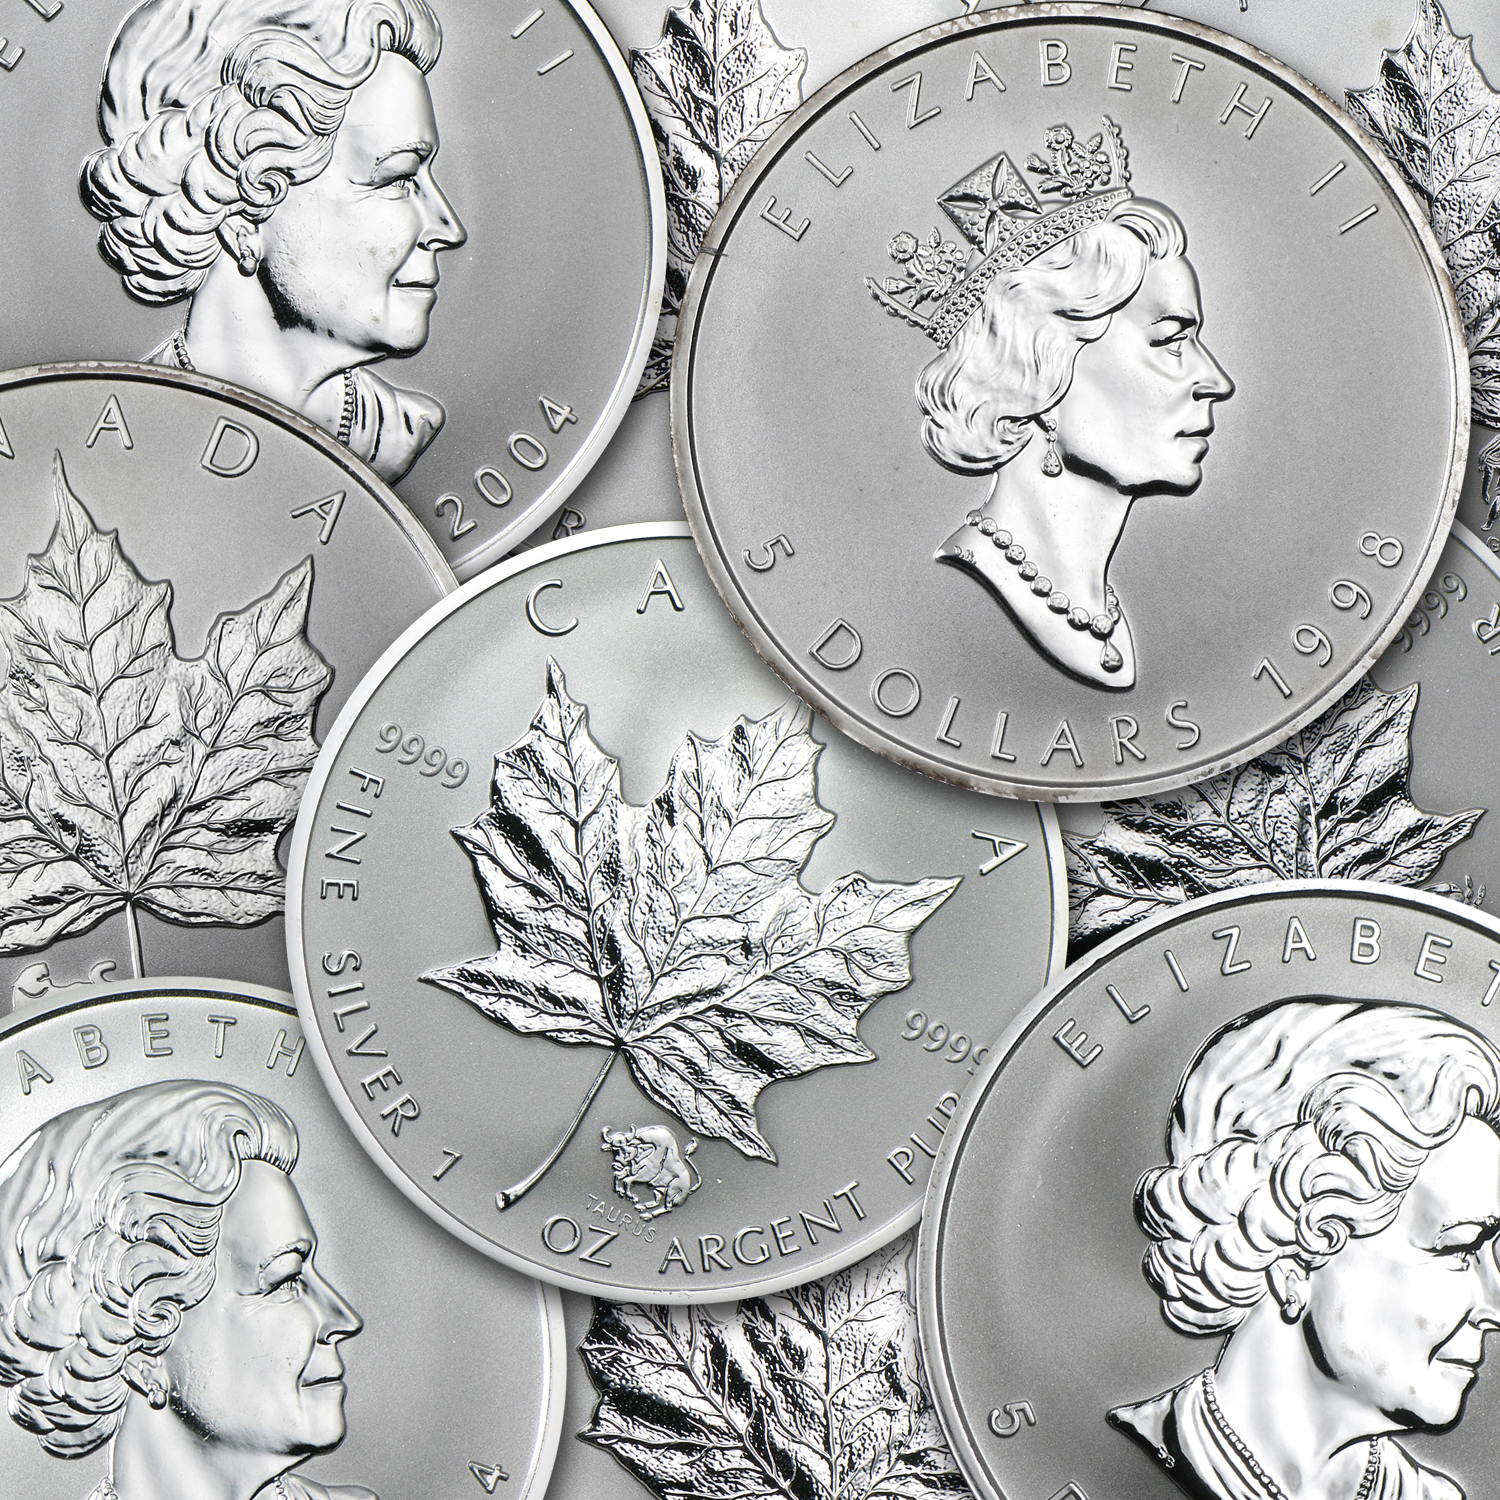 Canada 1 oz Silver Maple Leaf Privy Mark Coins (Random)